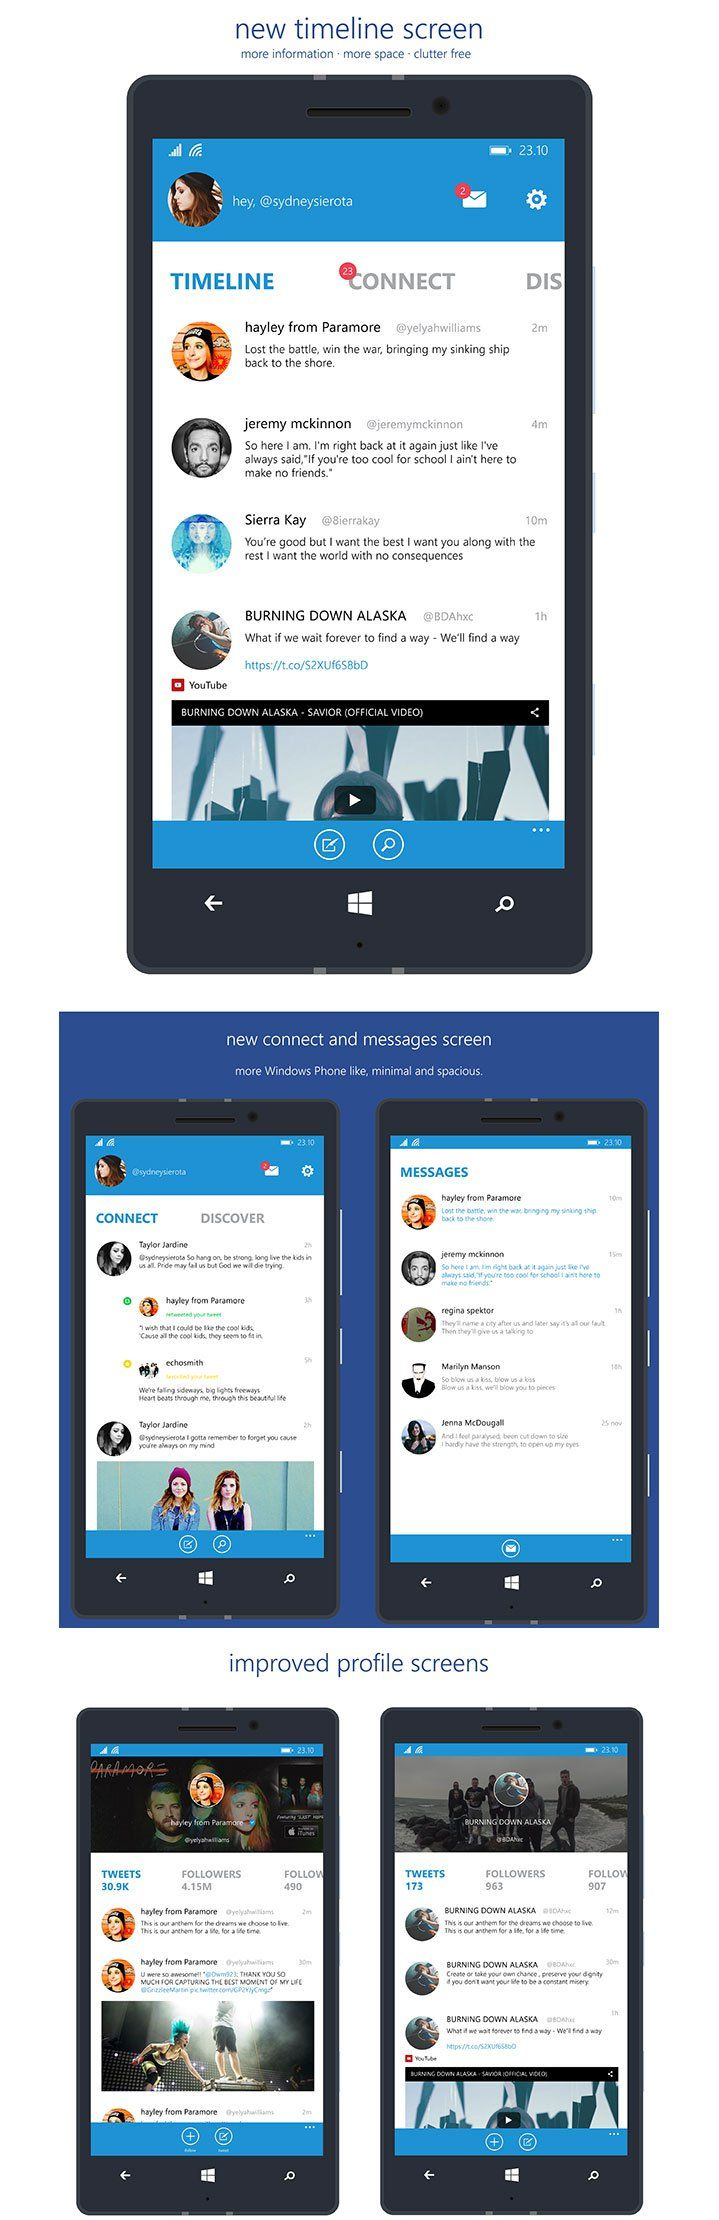 twitter for Windows Phone app smartphone